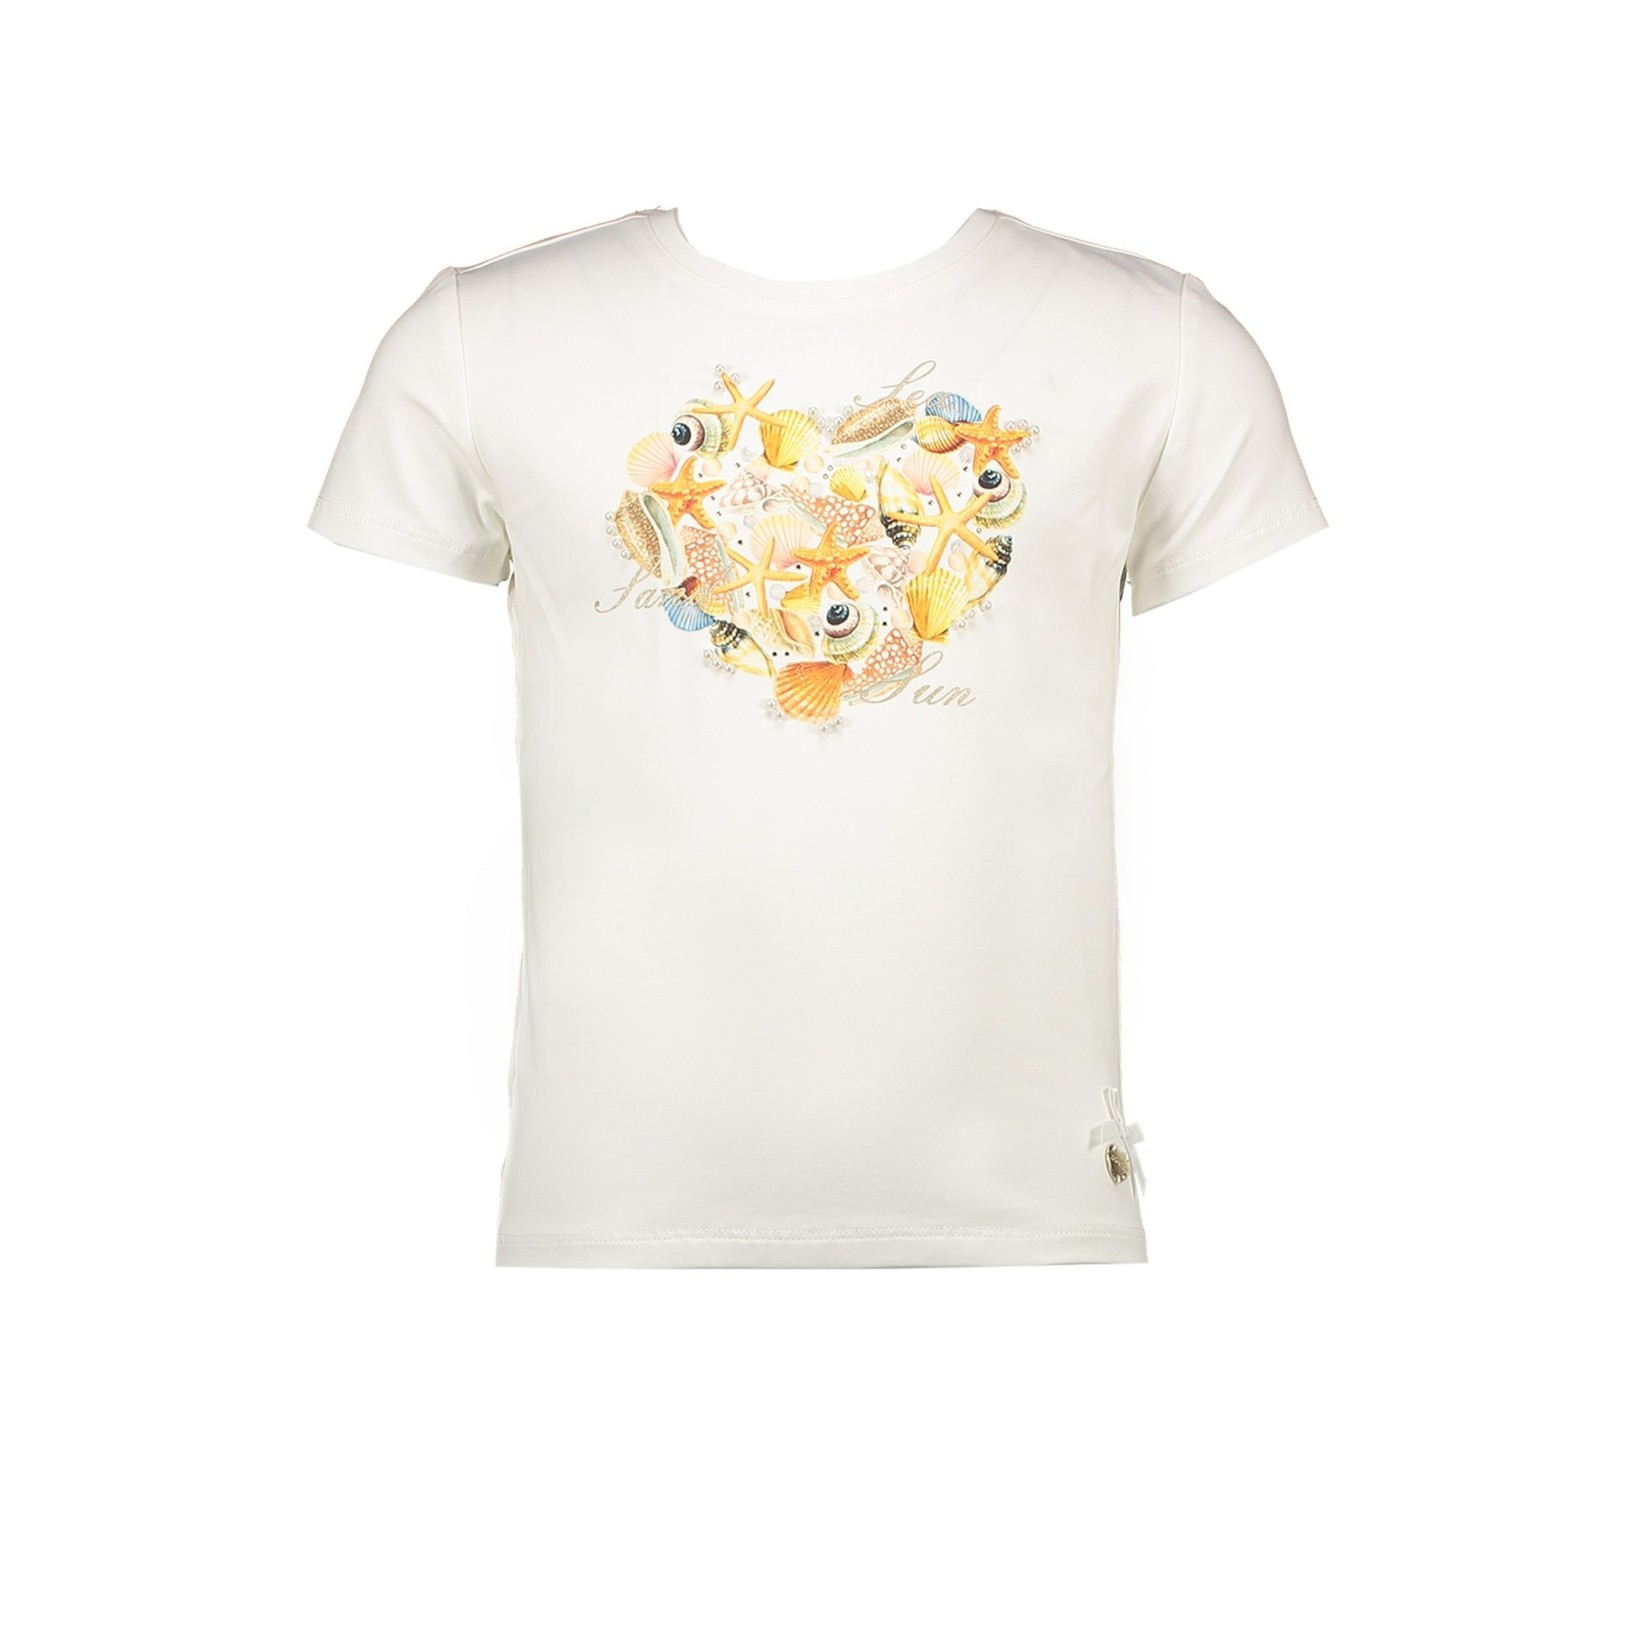 Le Chic Le Chic T-shirt heart made of shells